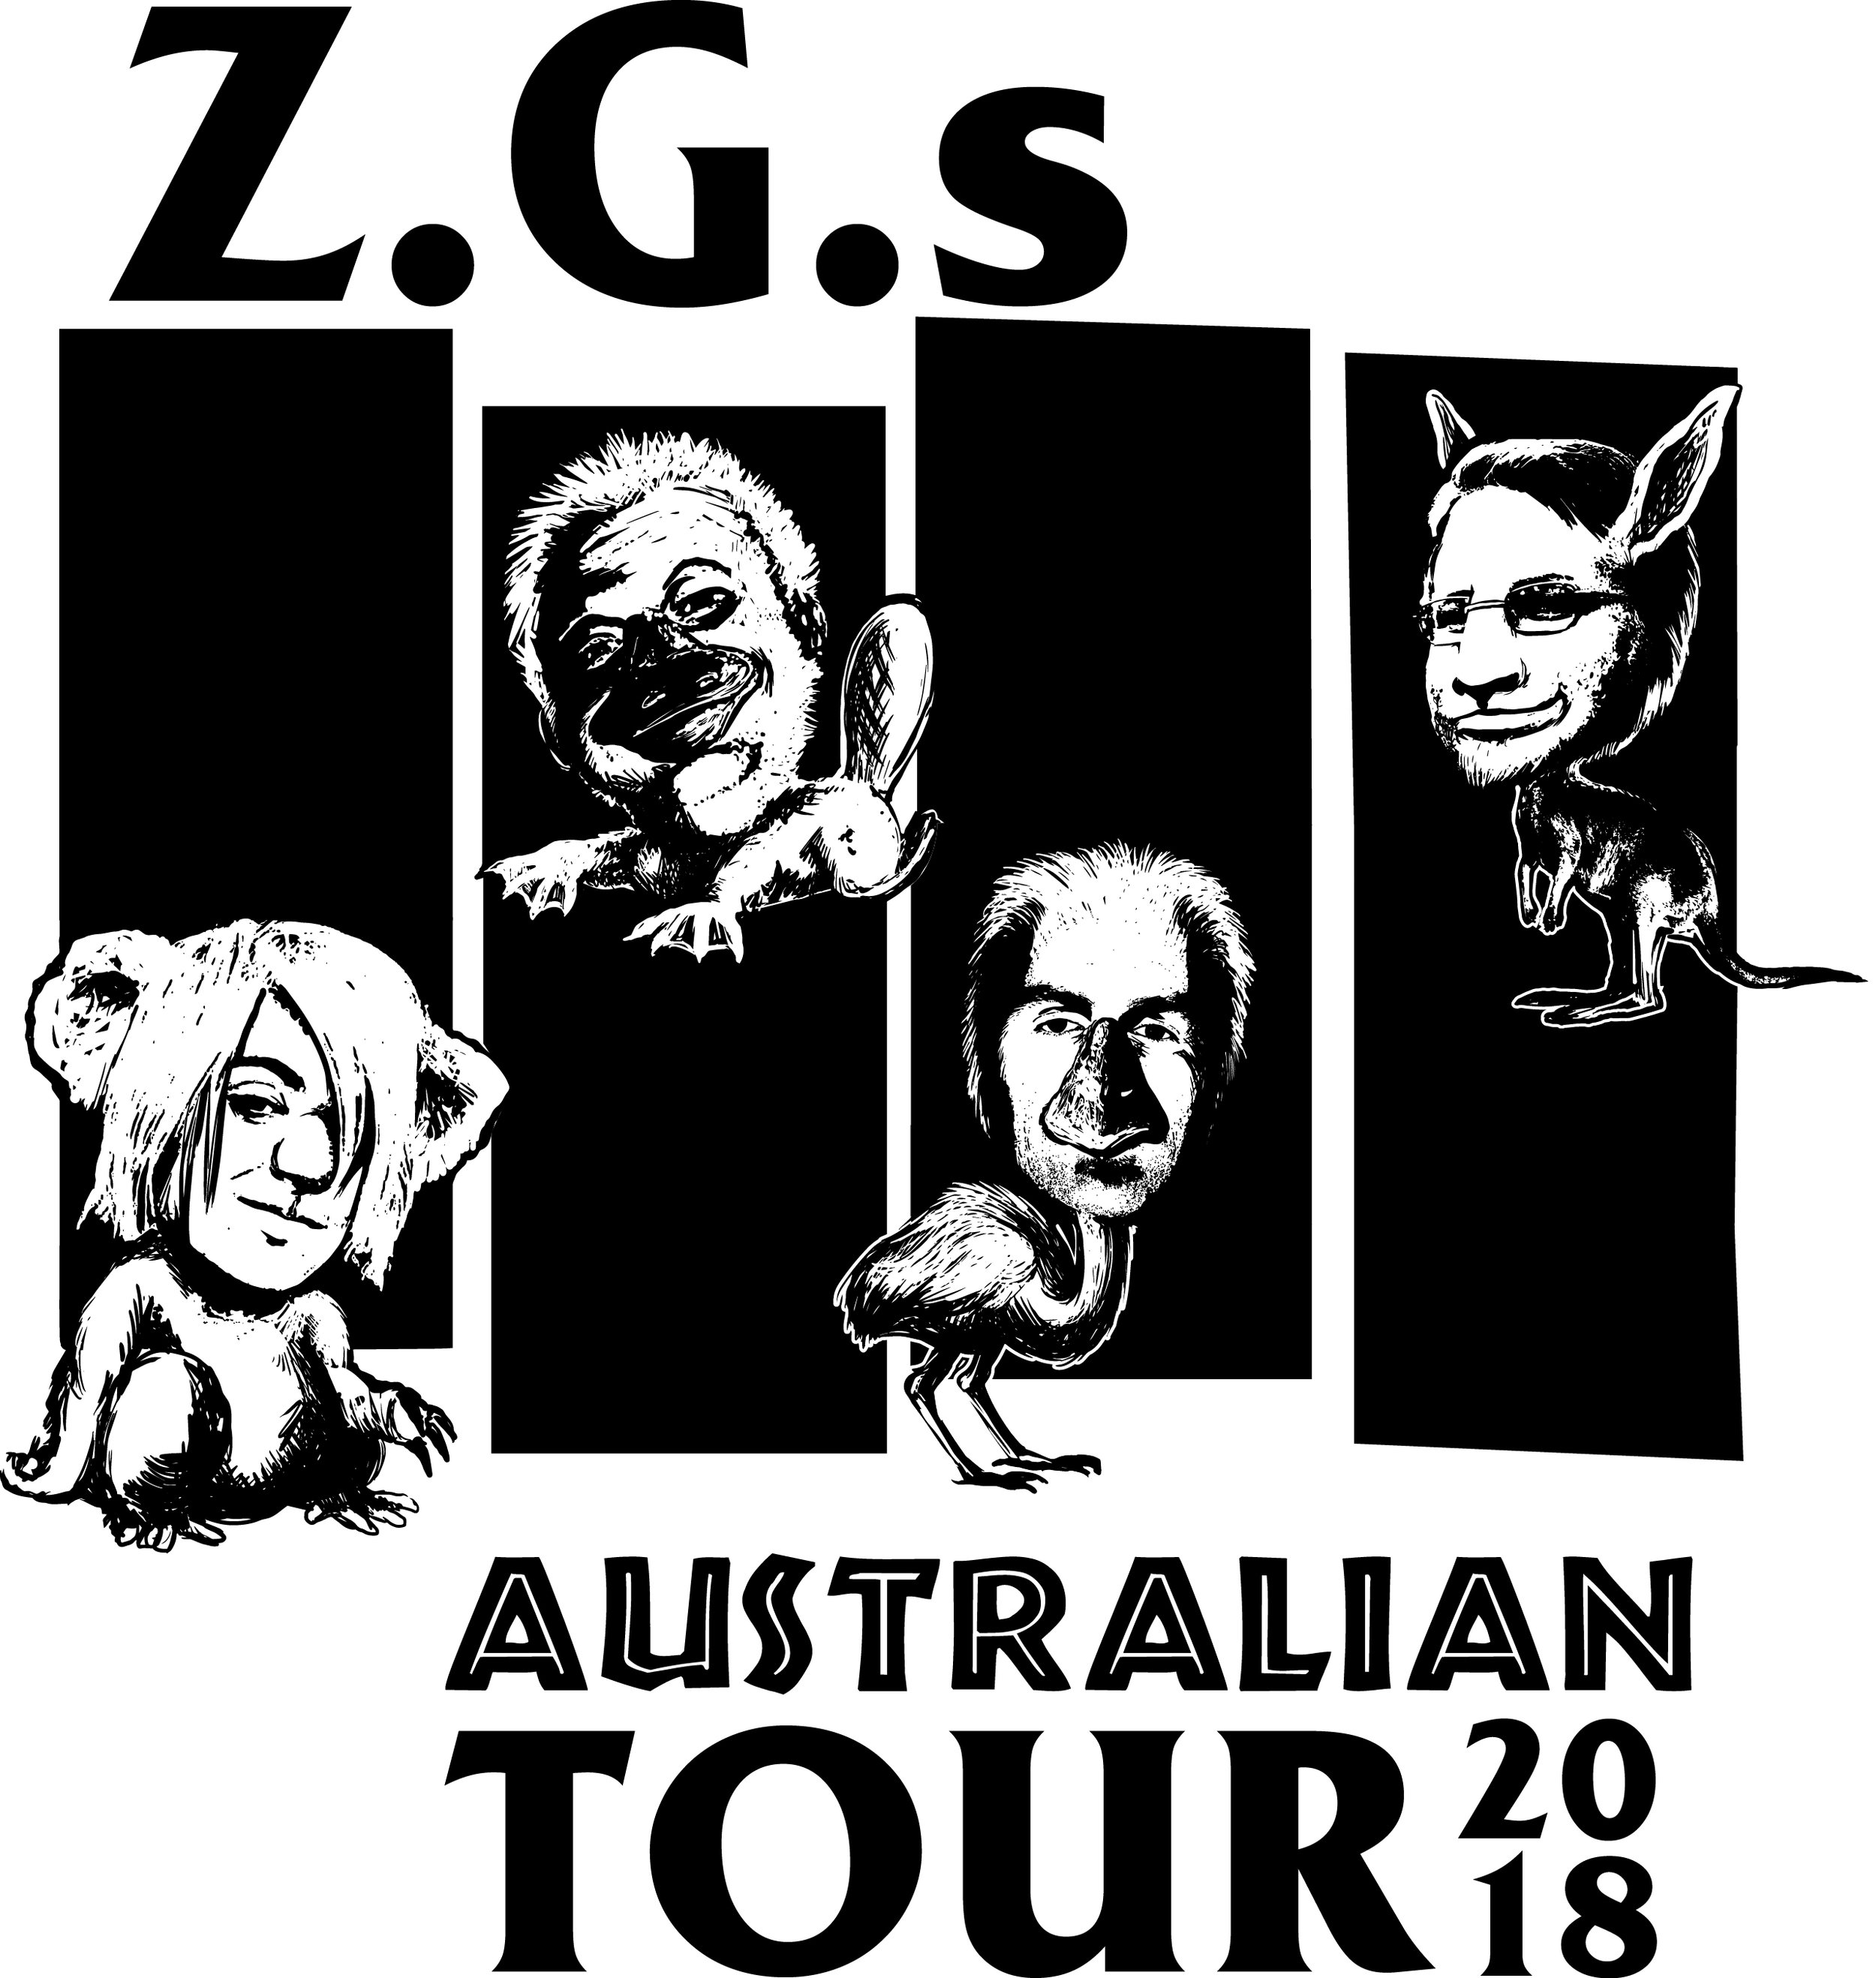 The Z.G.s Australian Tour T-Shirt Design.